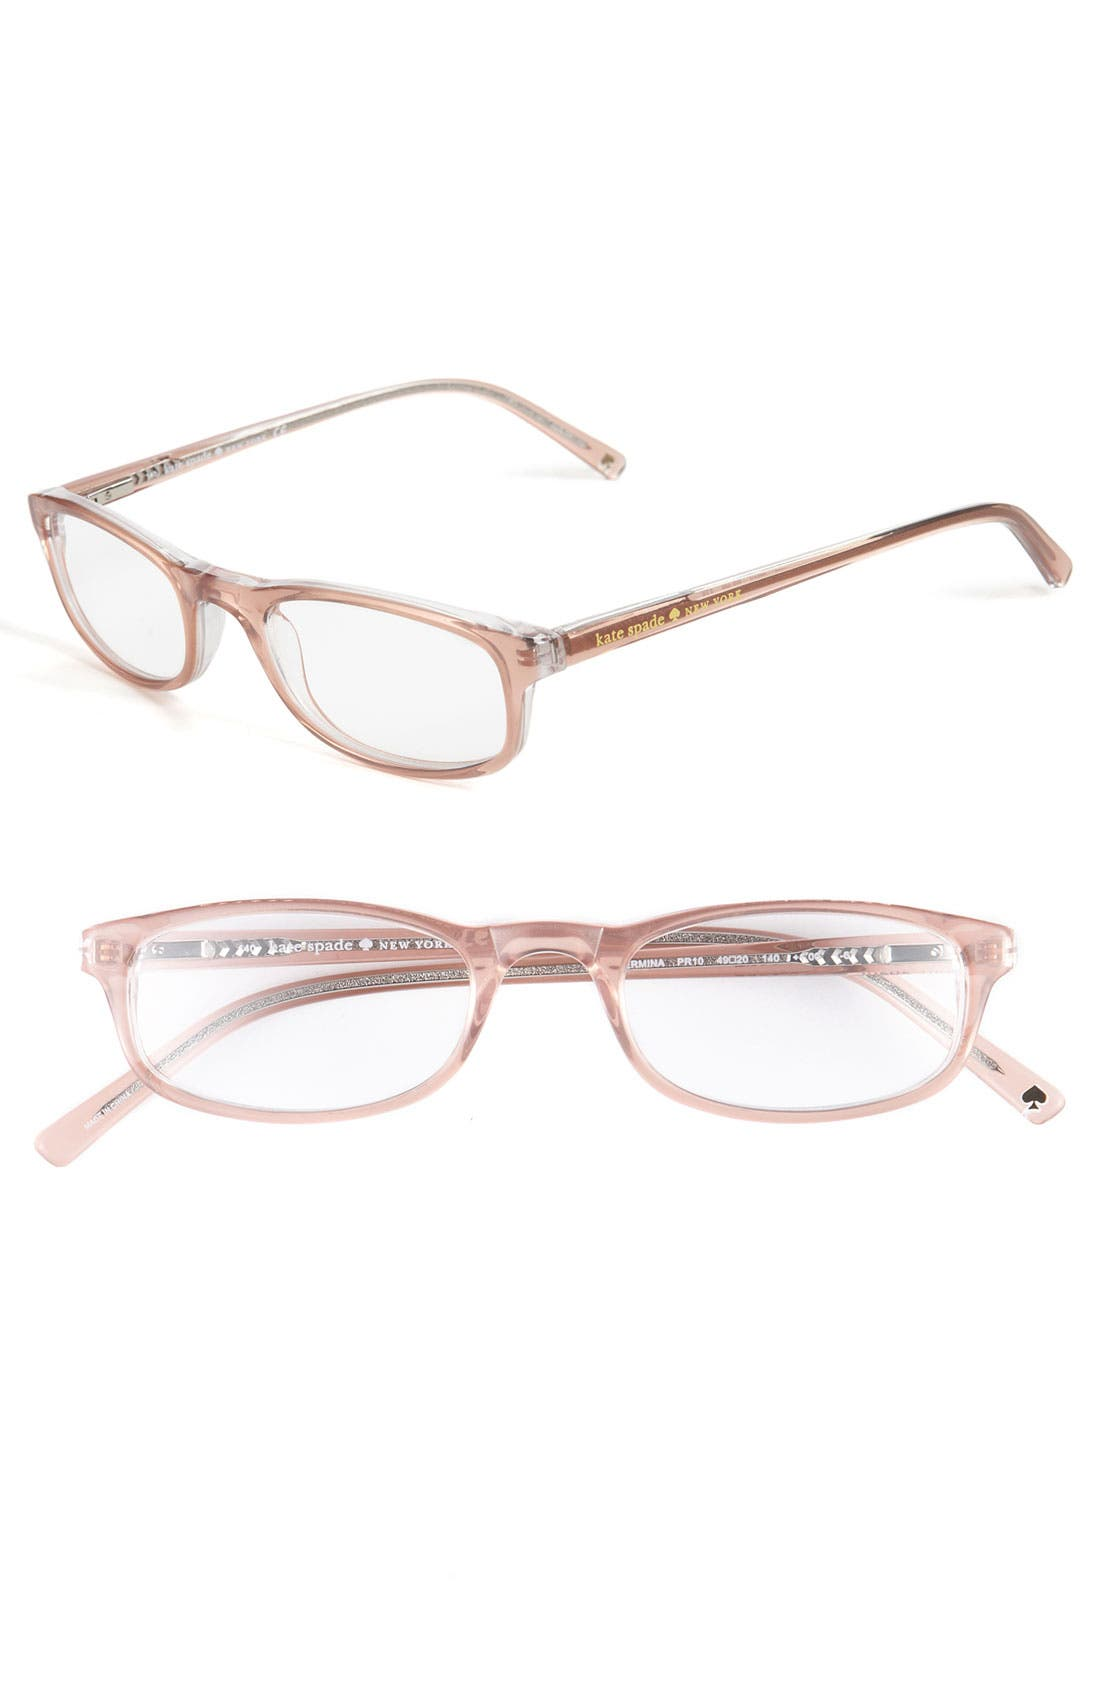 Alternate Image 1 Selected - kate spade new york 'fermina' reading glasses (Online Only)